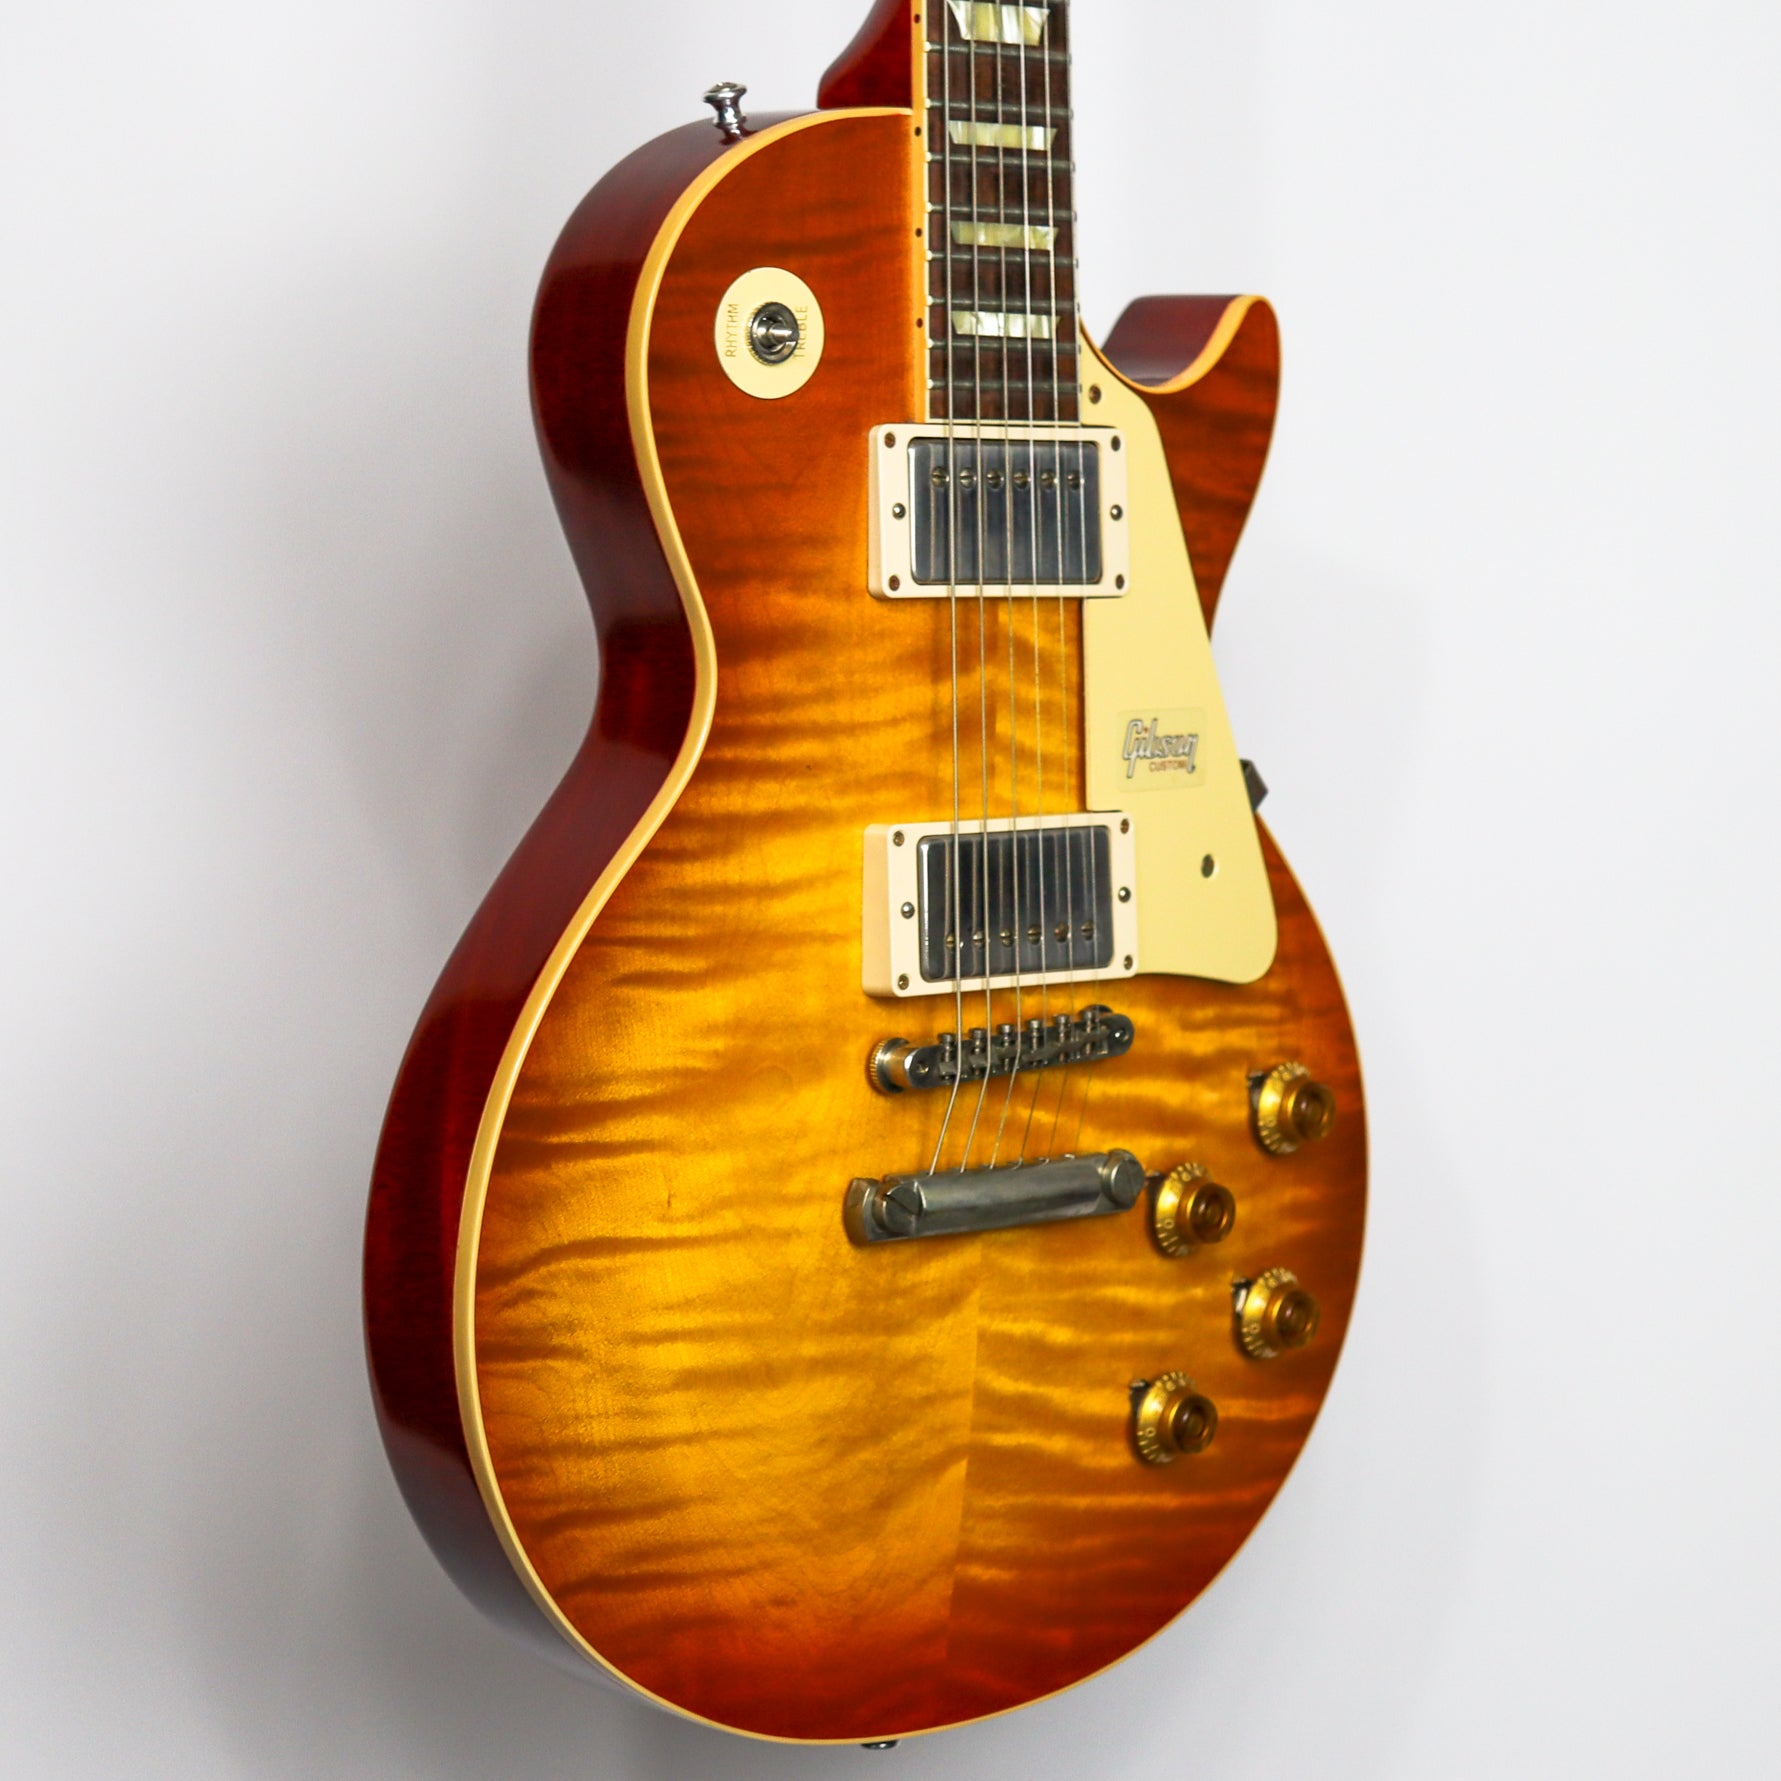 Gibson 60th Anniversary 1959 Les Paul Standard Reissue VOS Royal Teaburst